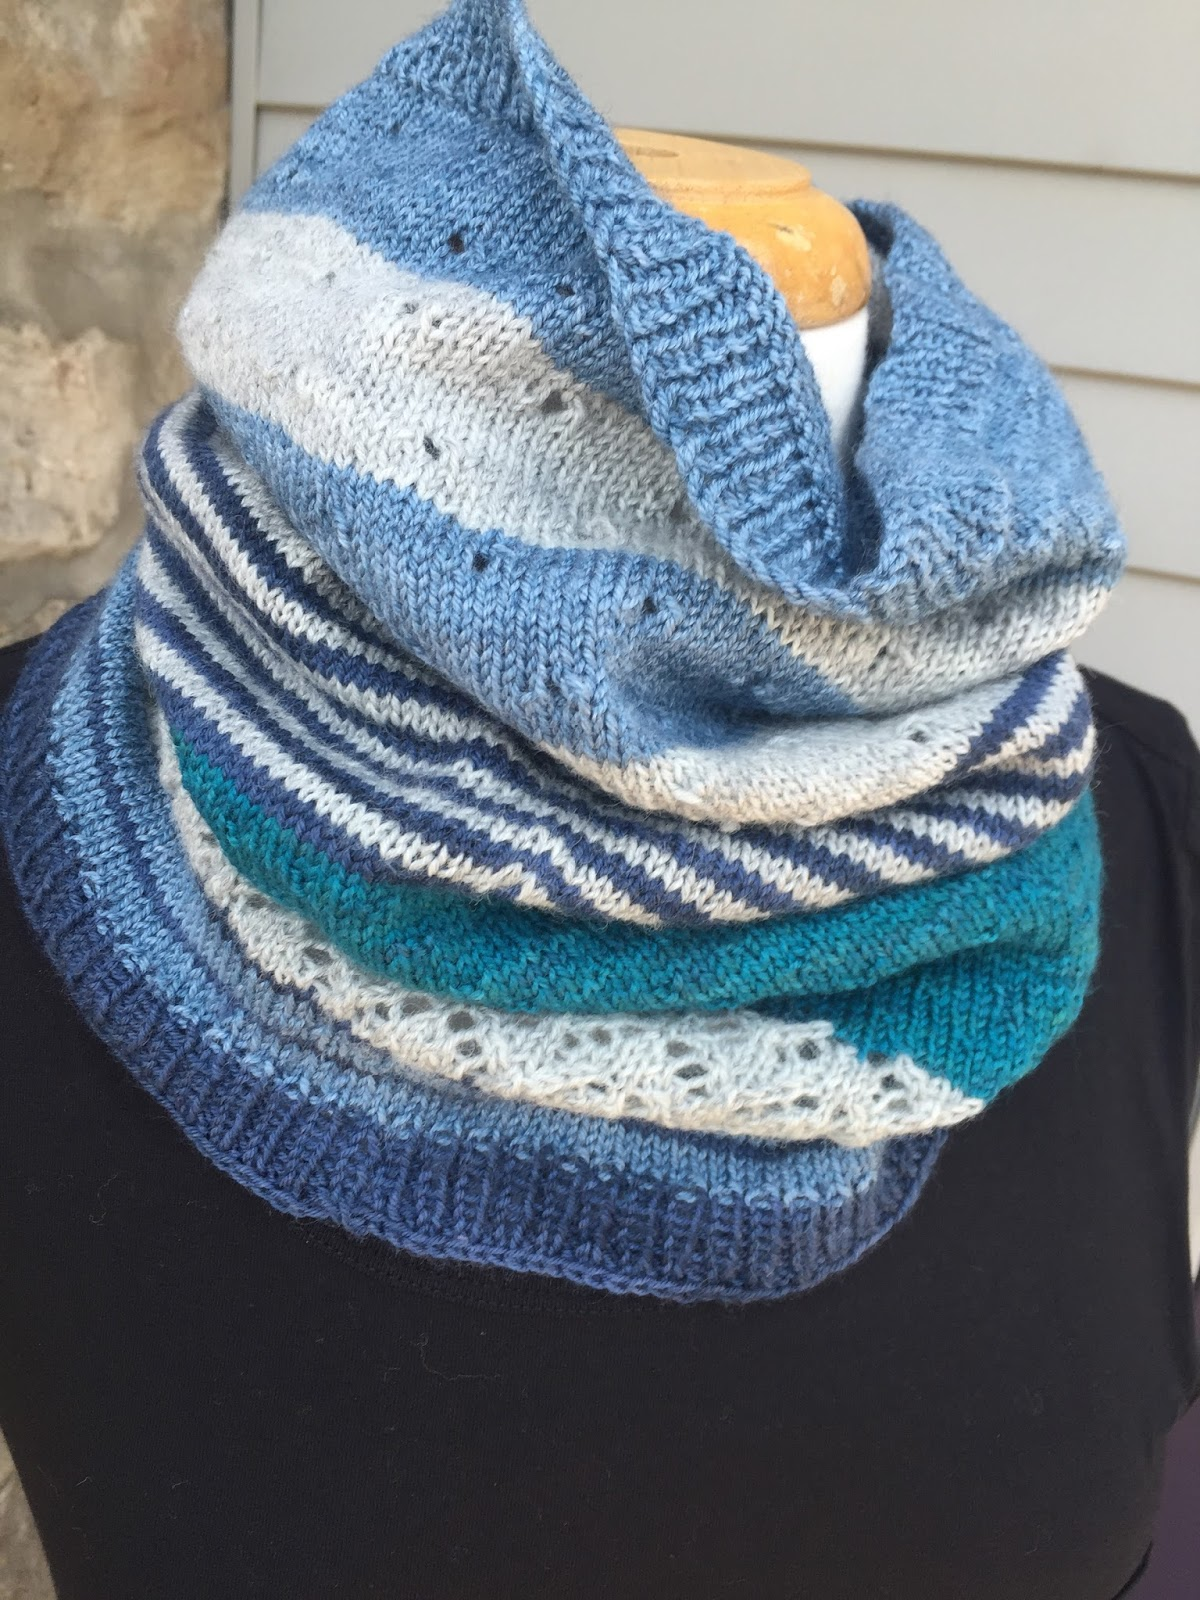 Knitting Pattern Cashmere Cowl : A Really Good Yarn: What weve knit Wednesday